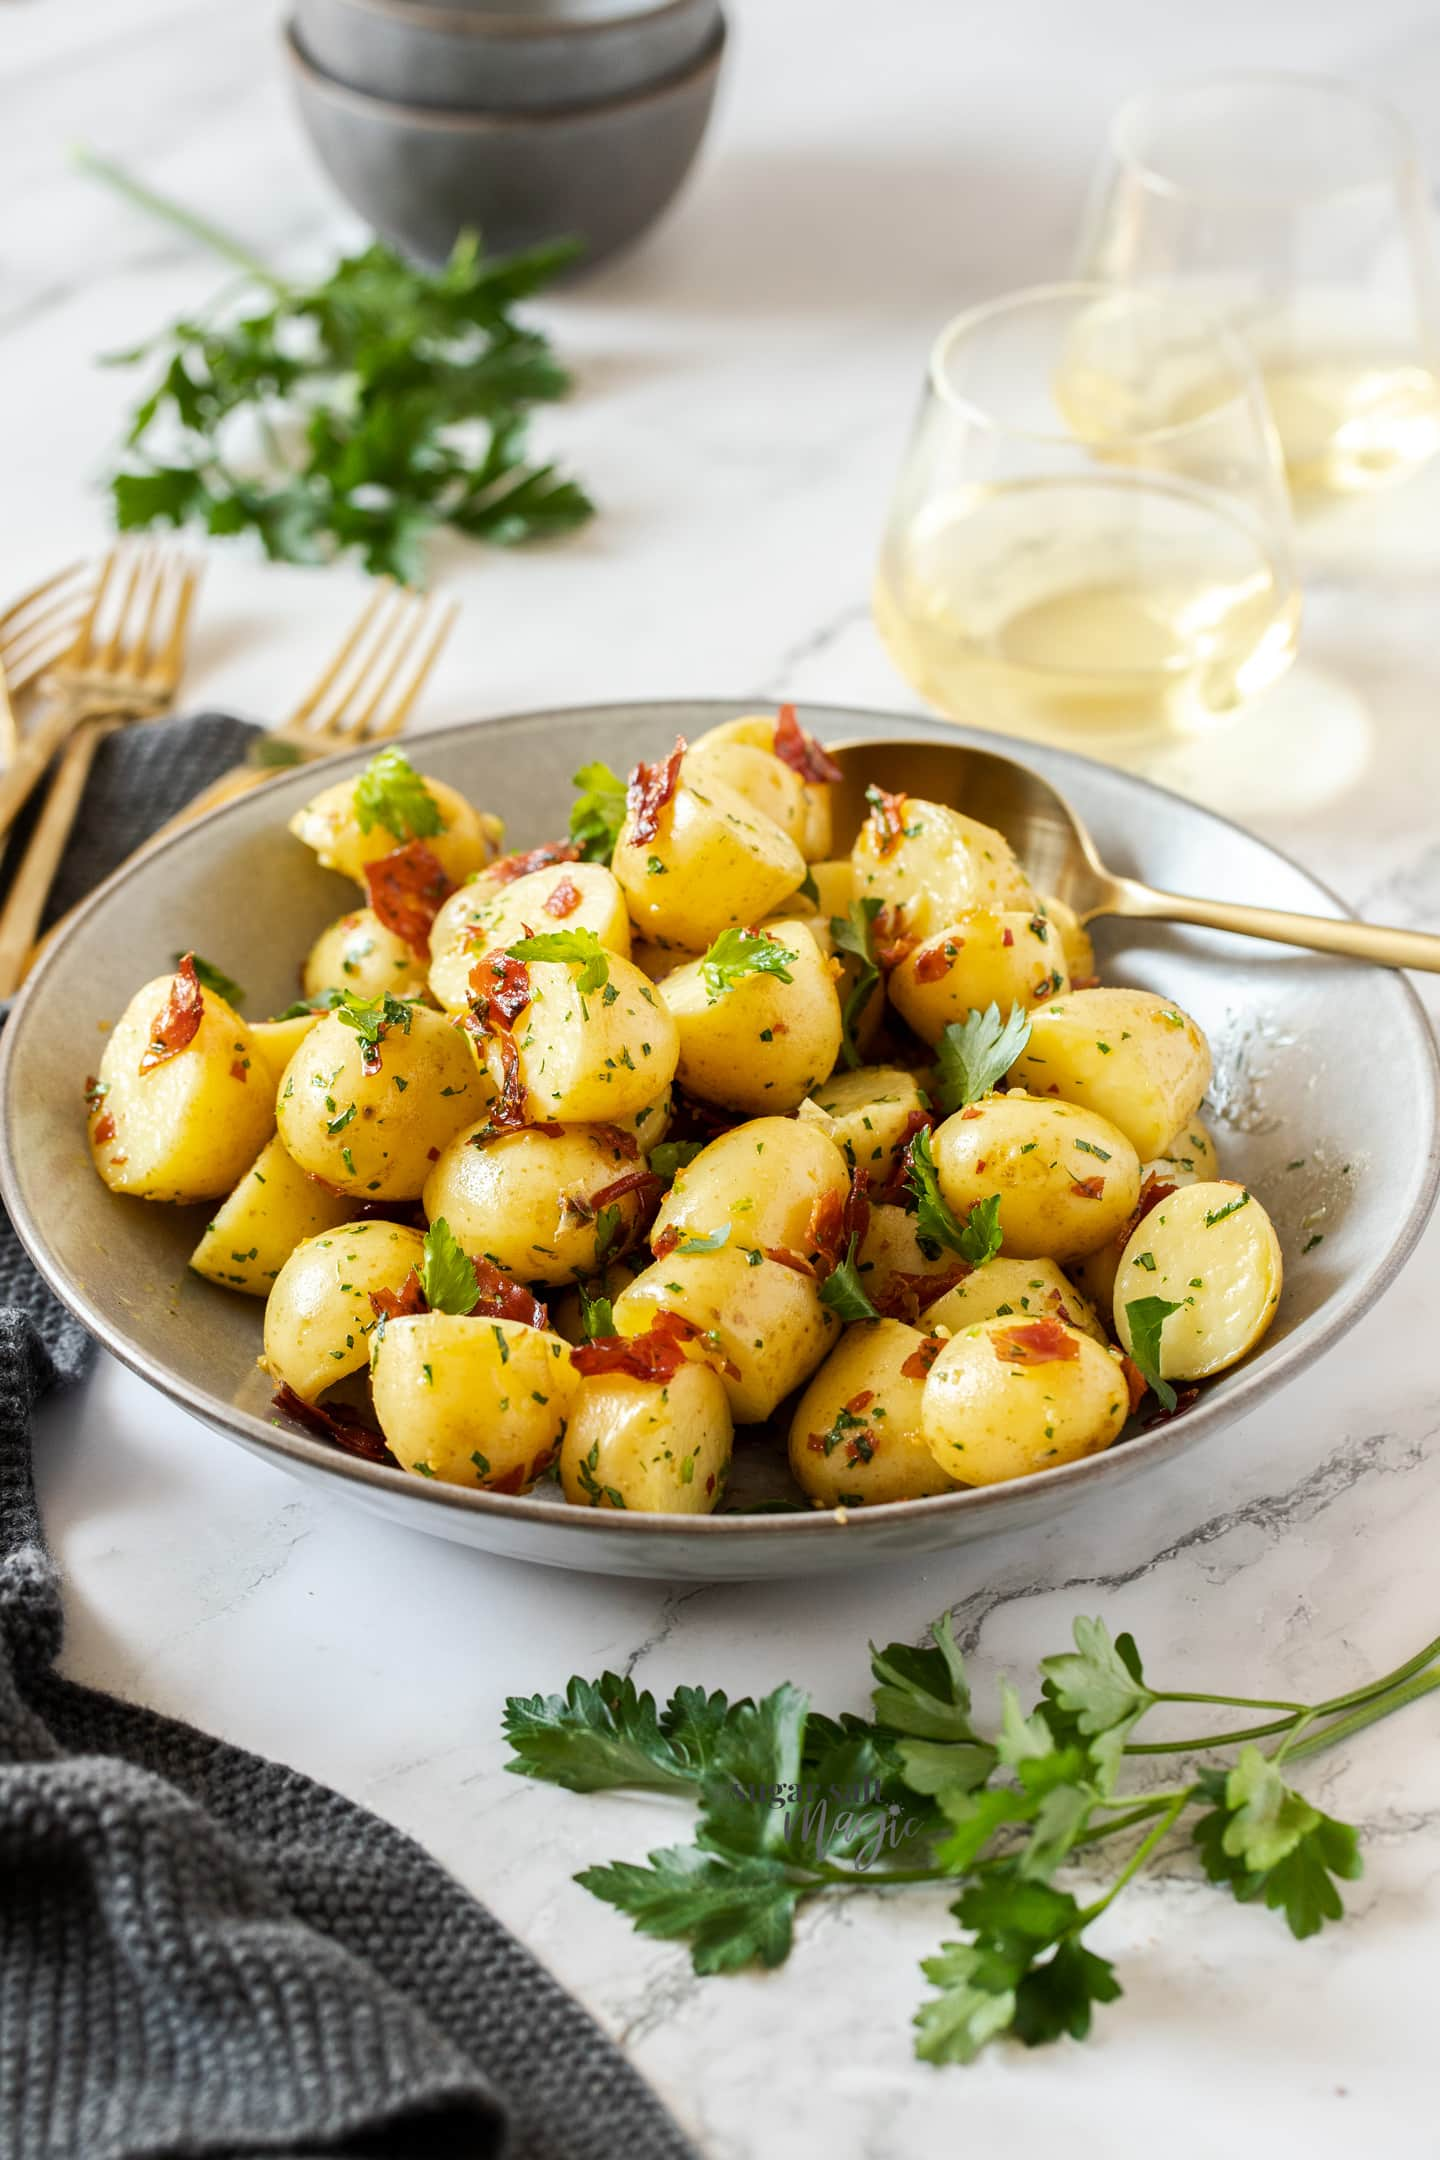 A large grey bowl filled with cooked potatoes with gold forks nearby